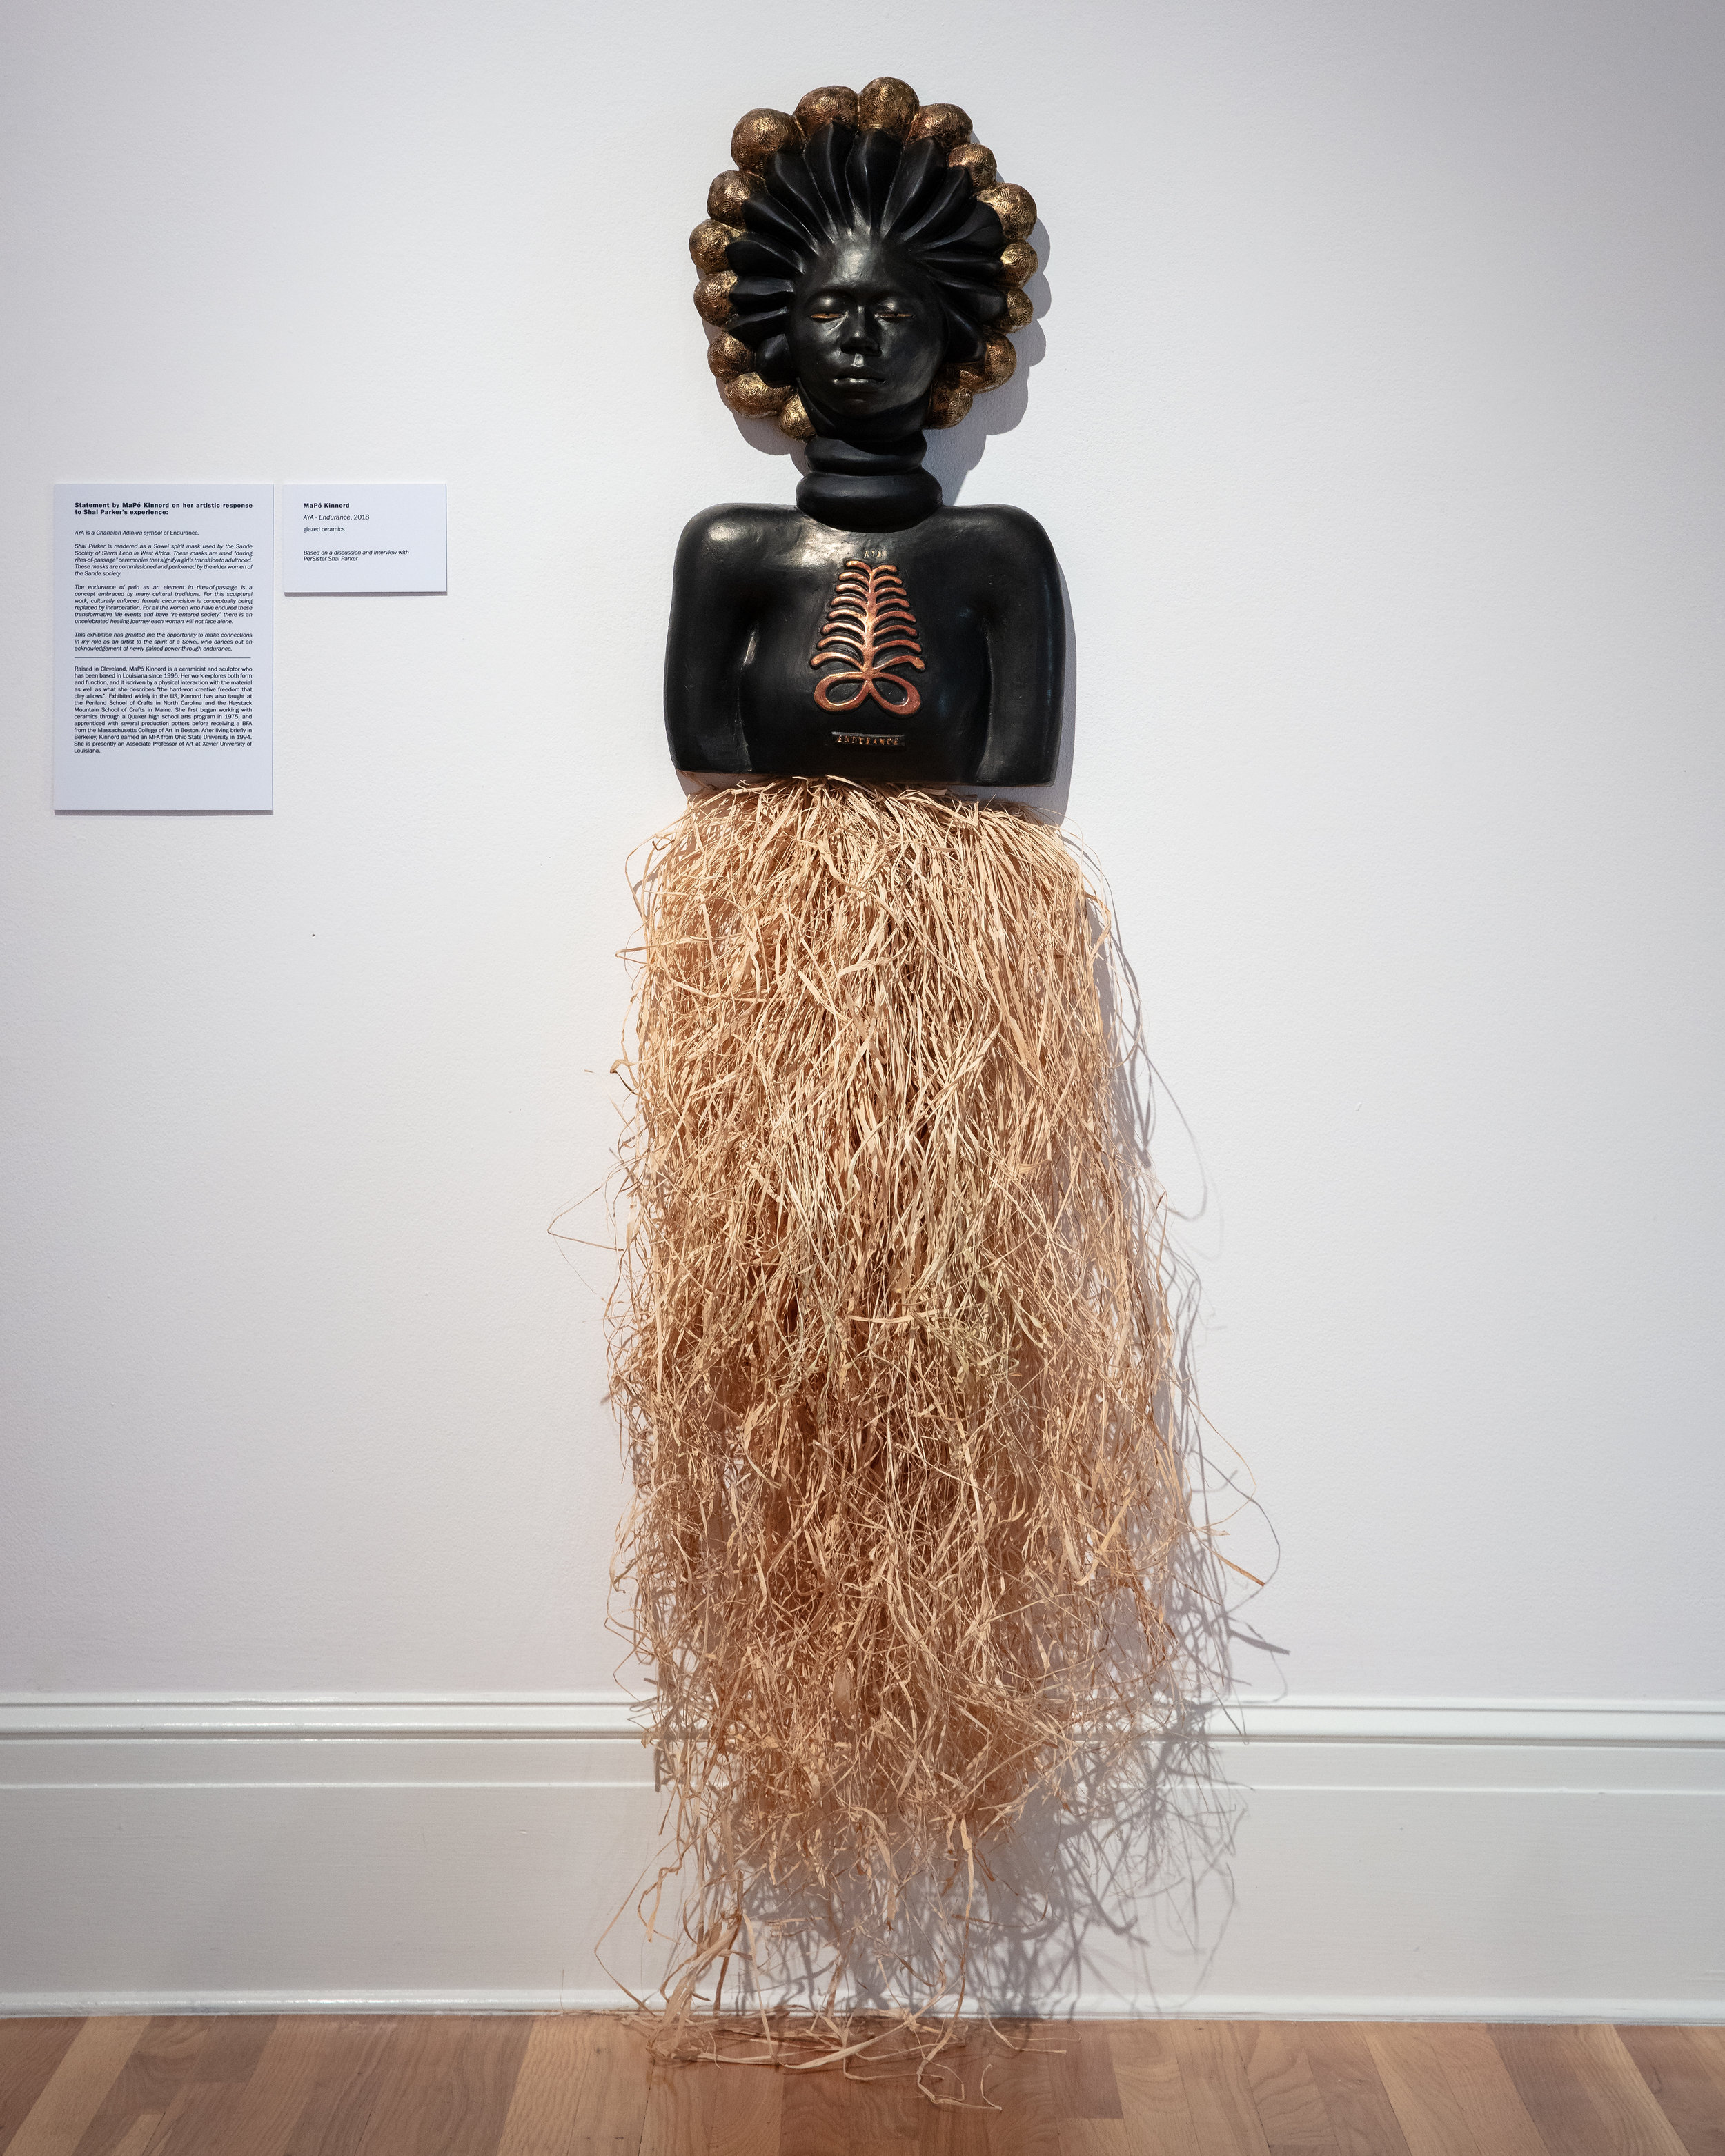 """Artist Statement - AYA – is a Ghanaian Adinkra symbol meaning Endurance.Shai Parker is rendered as a Sowei spirit mask used by the Sande Society of Sierra Leon in West Africa. These masks are used """" during rites-of-passage"""" ceremonies that signify a girl's transition to adulthood."""" These masks are commissioned and performed by the elder women of the Sande society.The endurance of pain as an element in rites-of-passage is a concept embraced by many cultural traditions. For this sculptural work, culturally enforced female circumcision is conceptually being replaced by incarceration. For all the women who have endured these transformative life events and have """"re-entered society"""" there is an uncelebrated healing journey each woman will not face alone. For me this exhibition has granted me the opportunity to make connects to my role as an artist to the spirit of a Sowei who dances out an acknowledgement of newly gained power through endurance.- MaPó KinnordAYA-Endurance, 2018"""